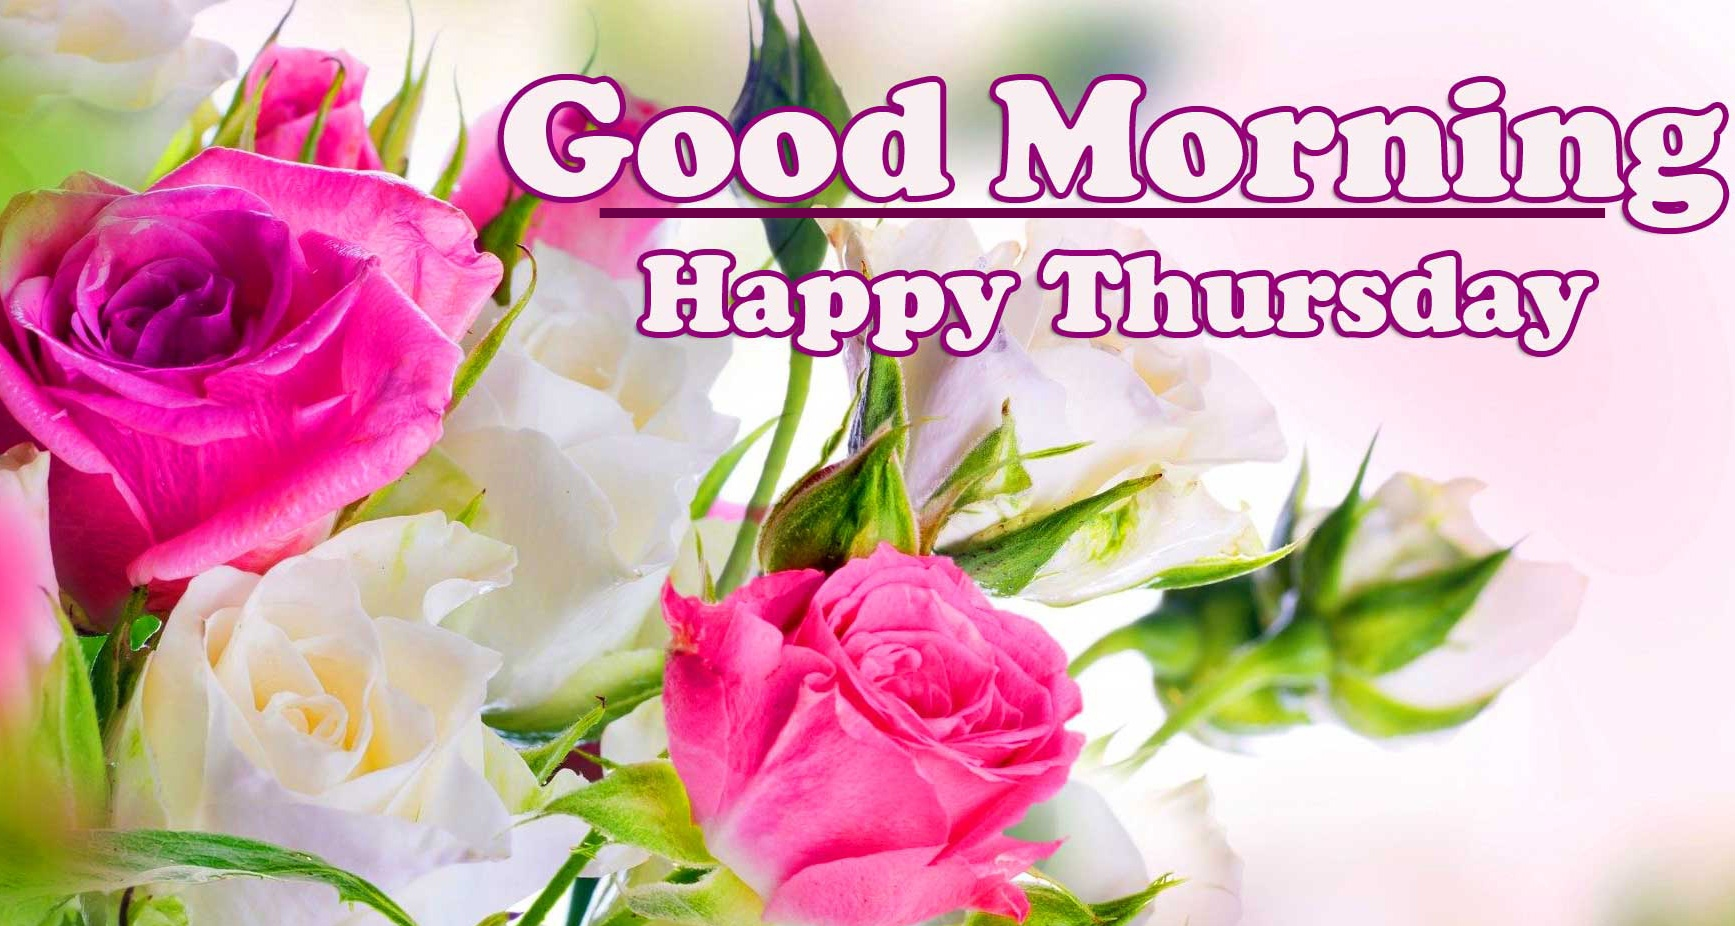 Good Morning Thursday Images Pics Wallpaper Latest Download